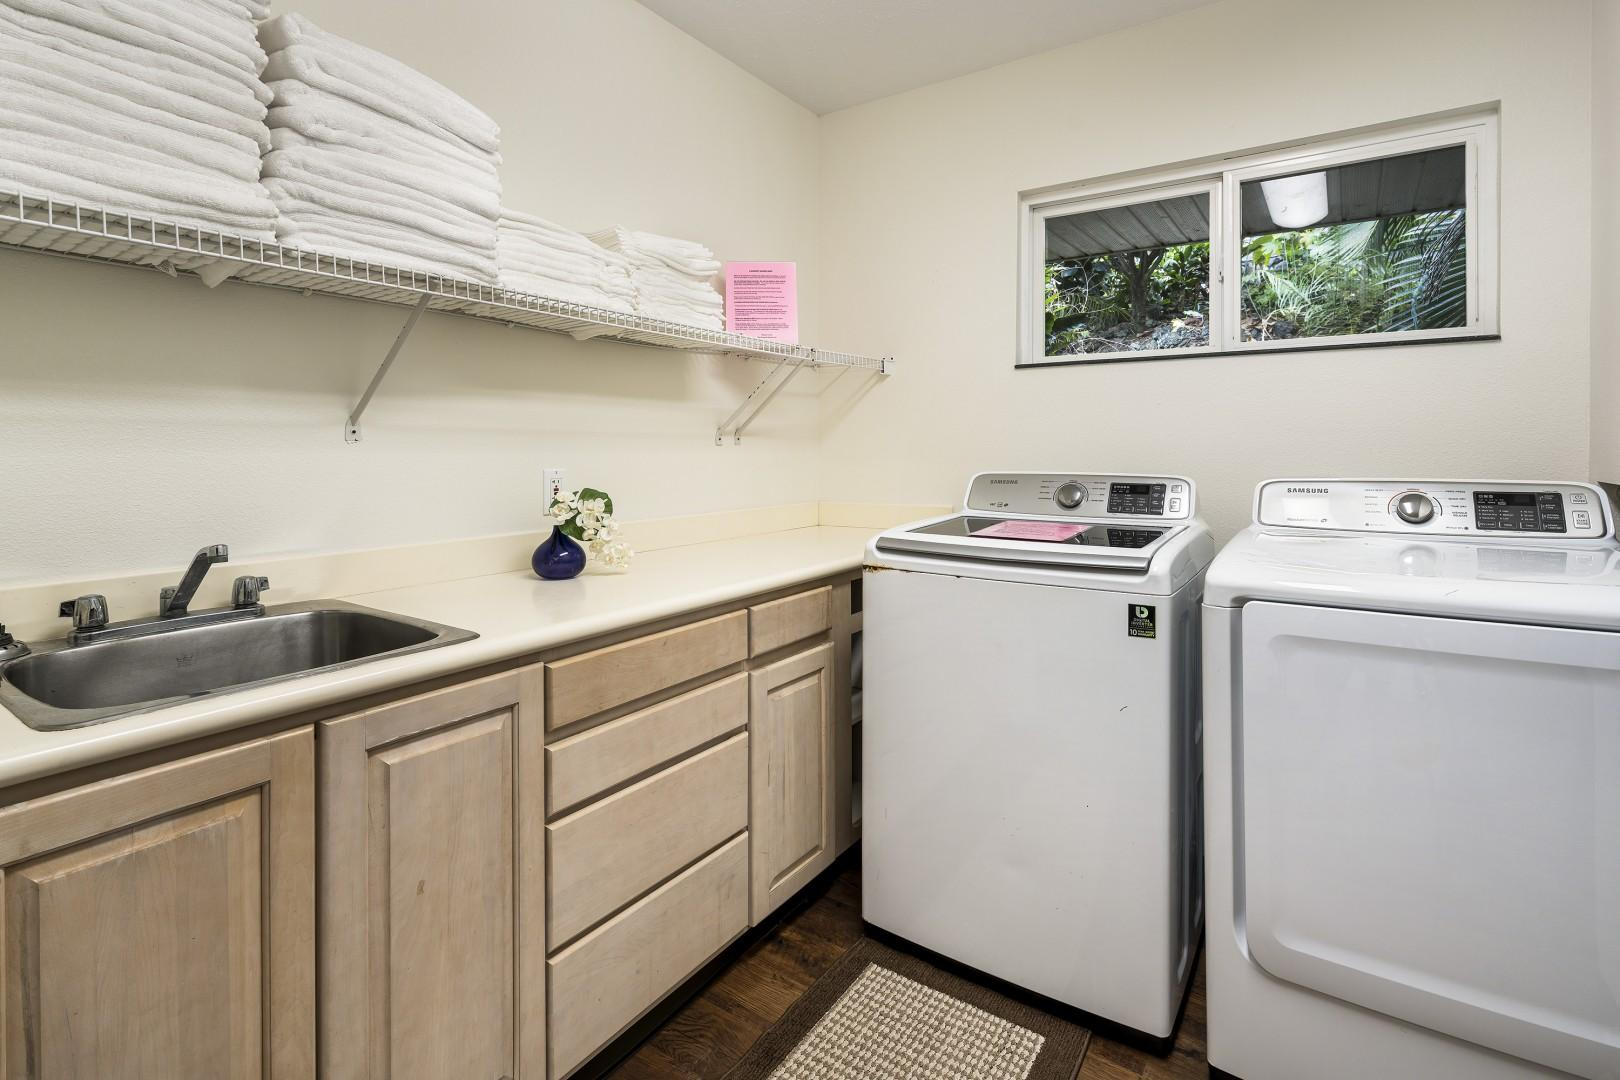 Spacious laundry room with commercial washer / dryer